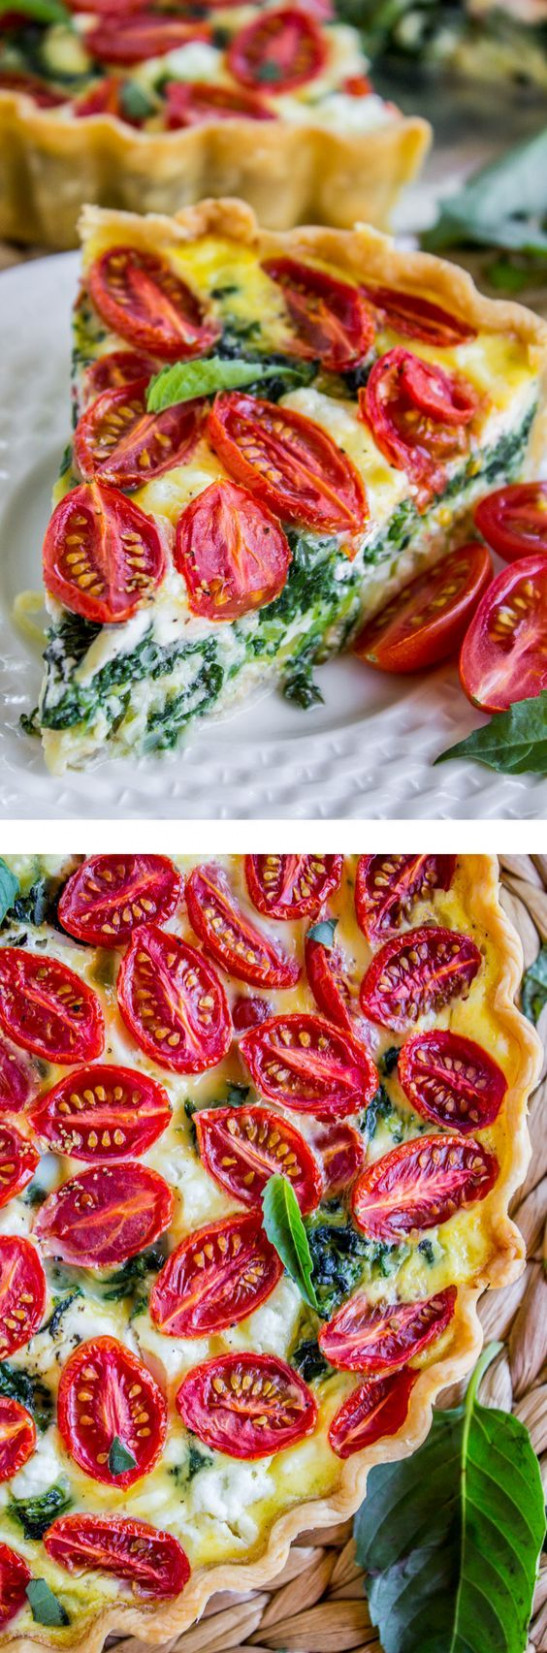 Cherry Tomato, Leek, and Spinach Quiche from The Food ..